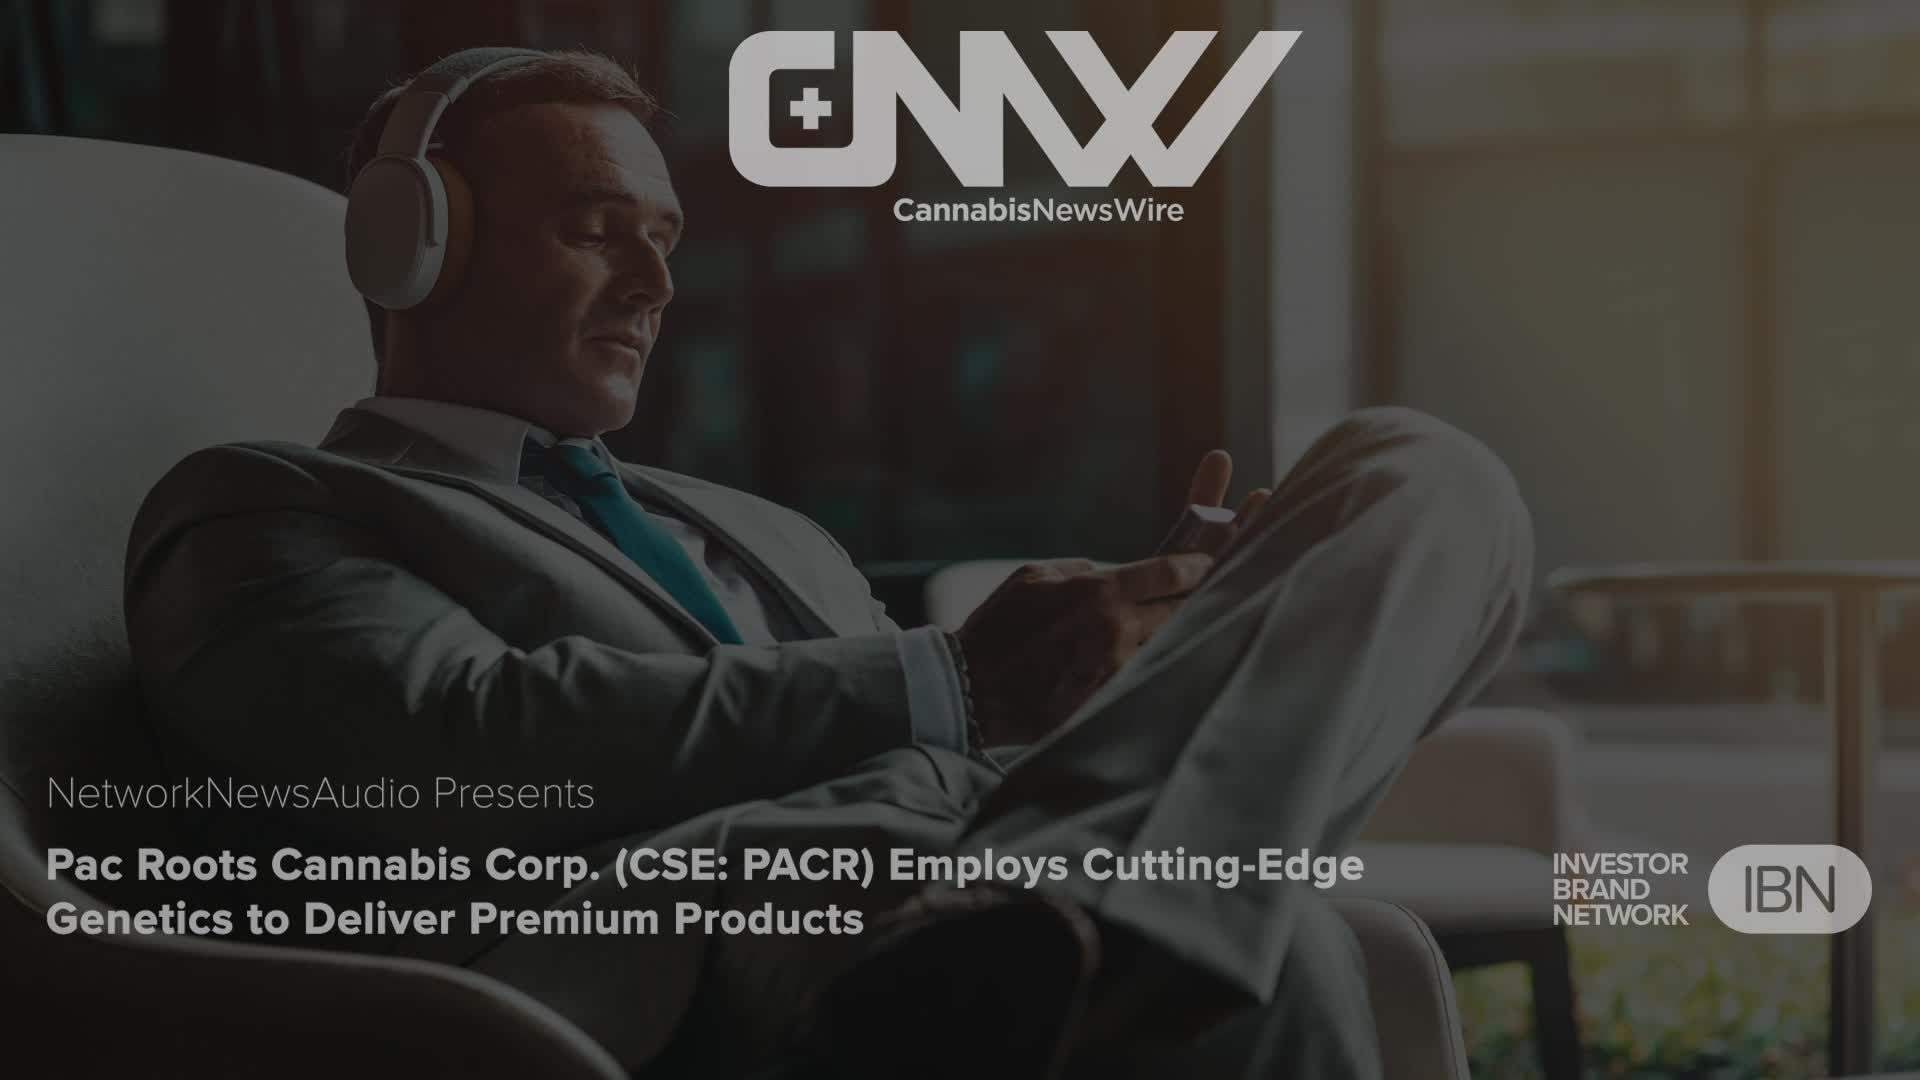 InvestorBrandNetwork - The CannabisNewsAudio Podcast - Pac Roots Cannabis Corp. (CSE: PACR) Employs Cutting-Edge Genetics to Deliver Premium Products